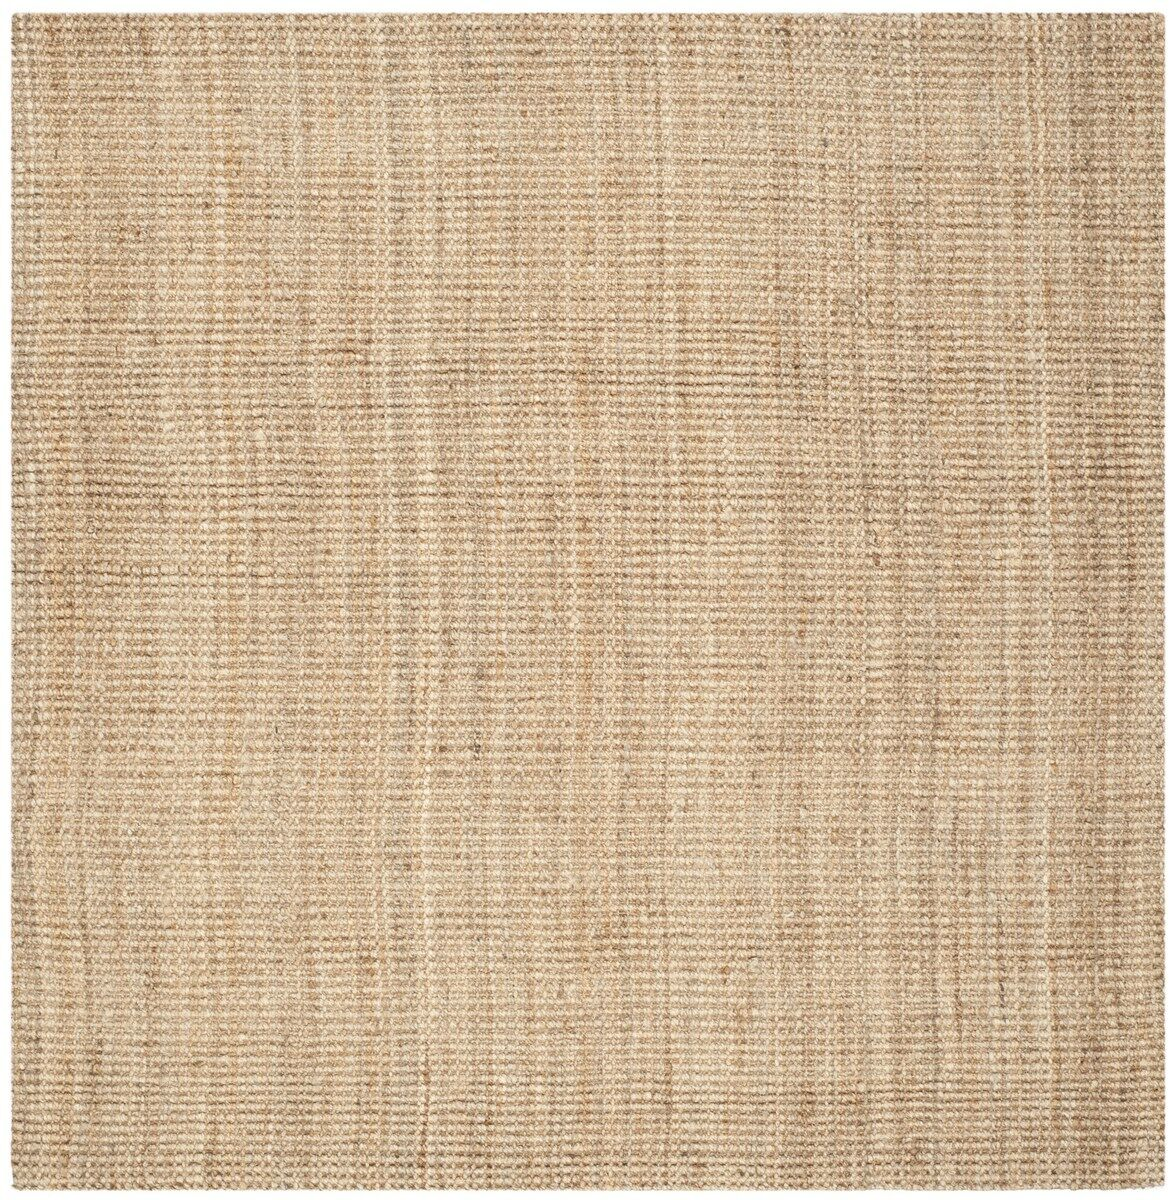 Calidia Hand-Loomed Beige Area Rug Rug Size: Square 7'